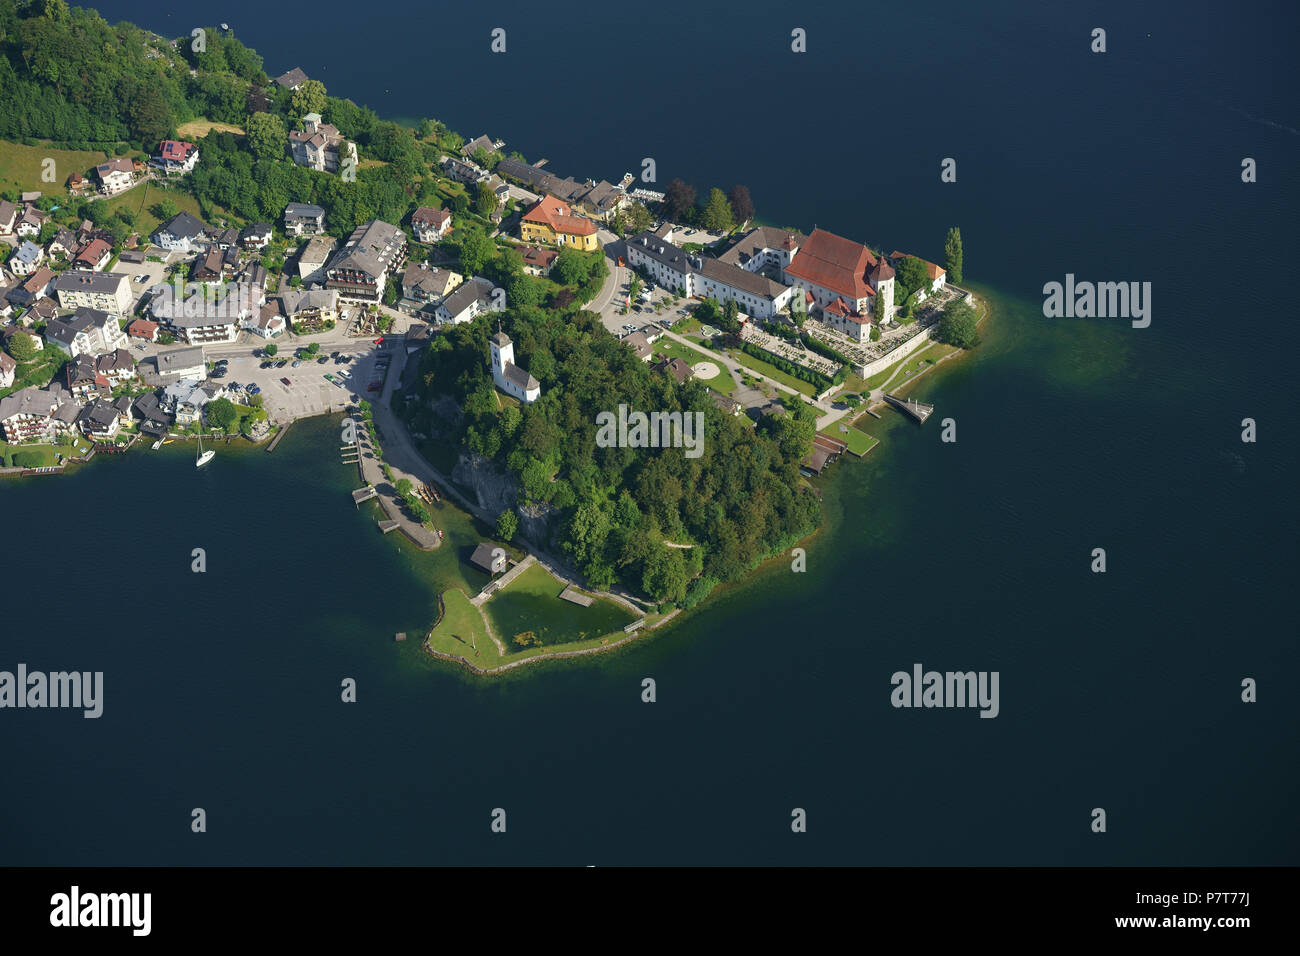 VILLAGE OF TRAUNKIRCHEN ON THE LAKESHORE OF TRAUNSEE (aerial view). Upper Austria, Austria. - Stock Image